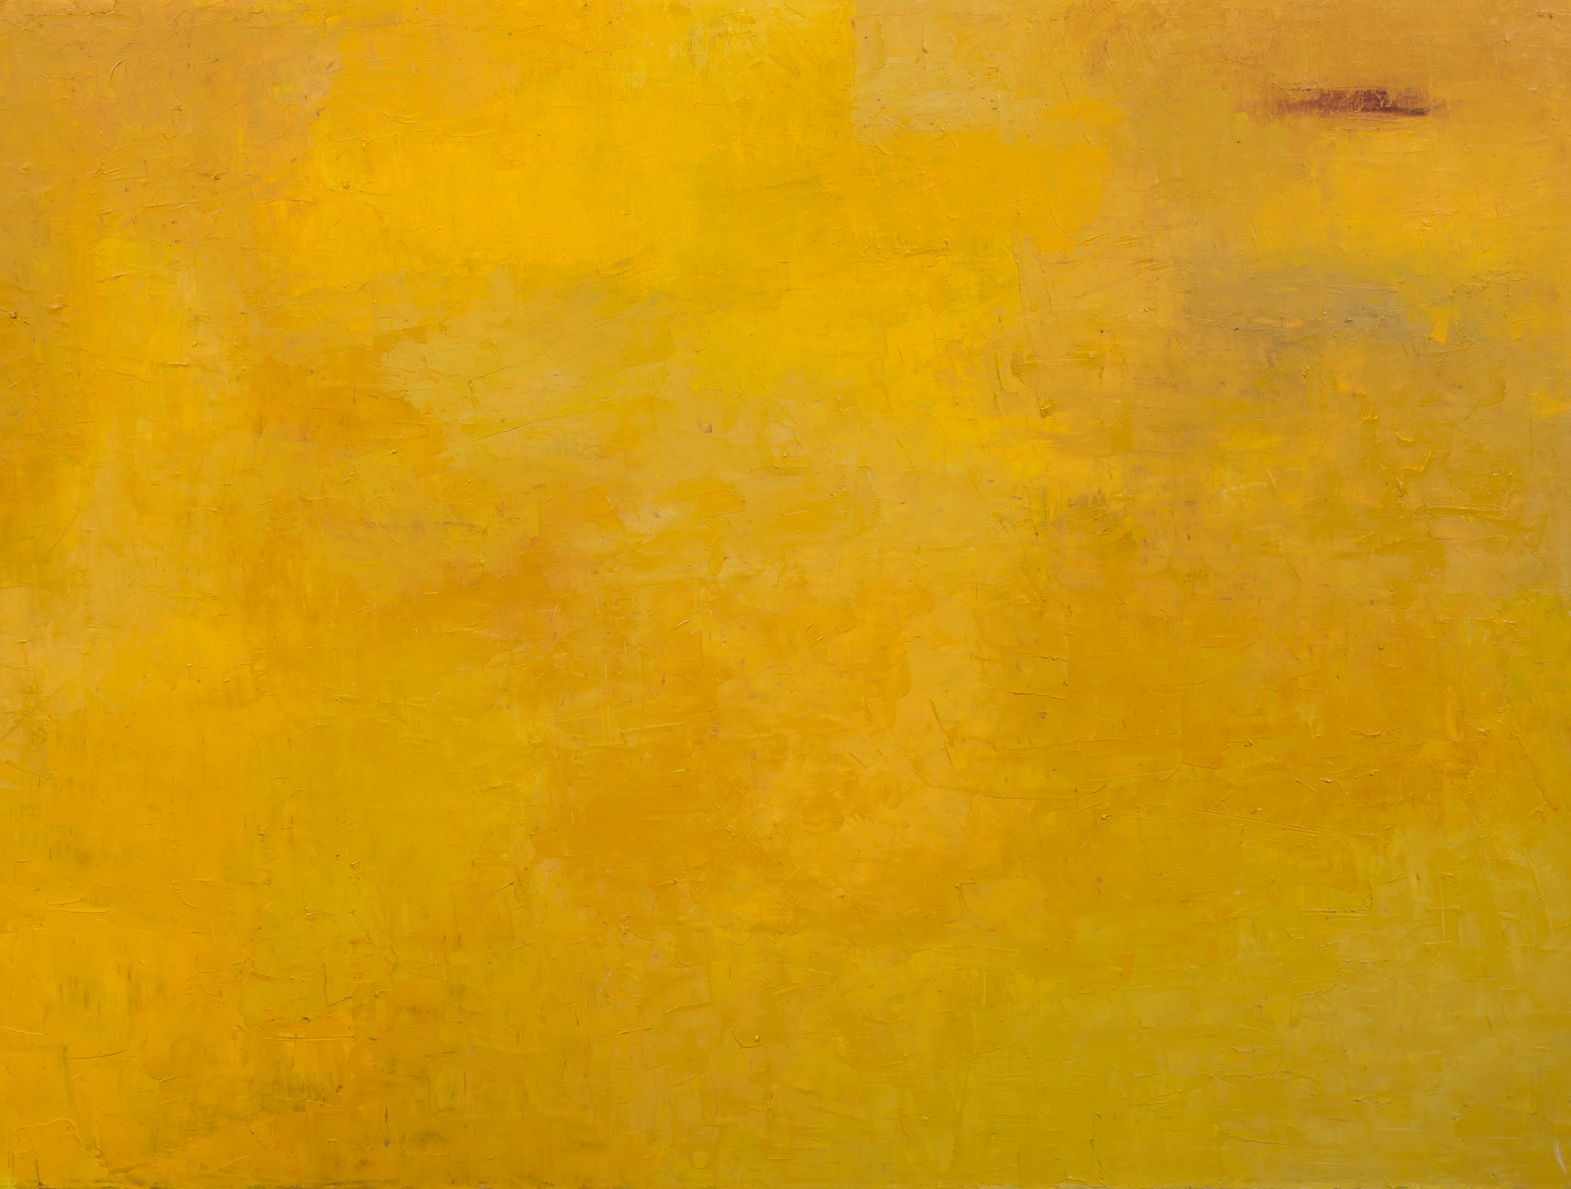 Untitled (yellow/red #1)